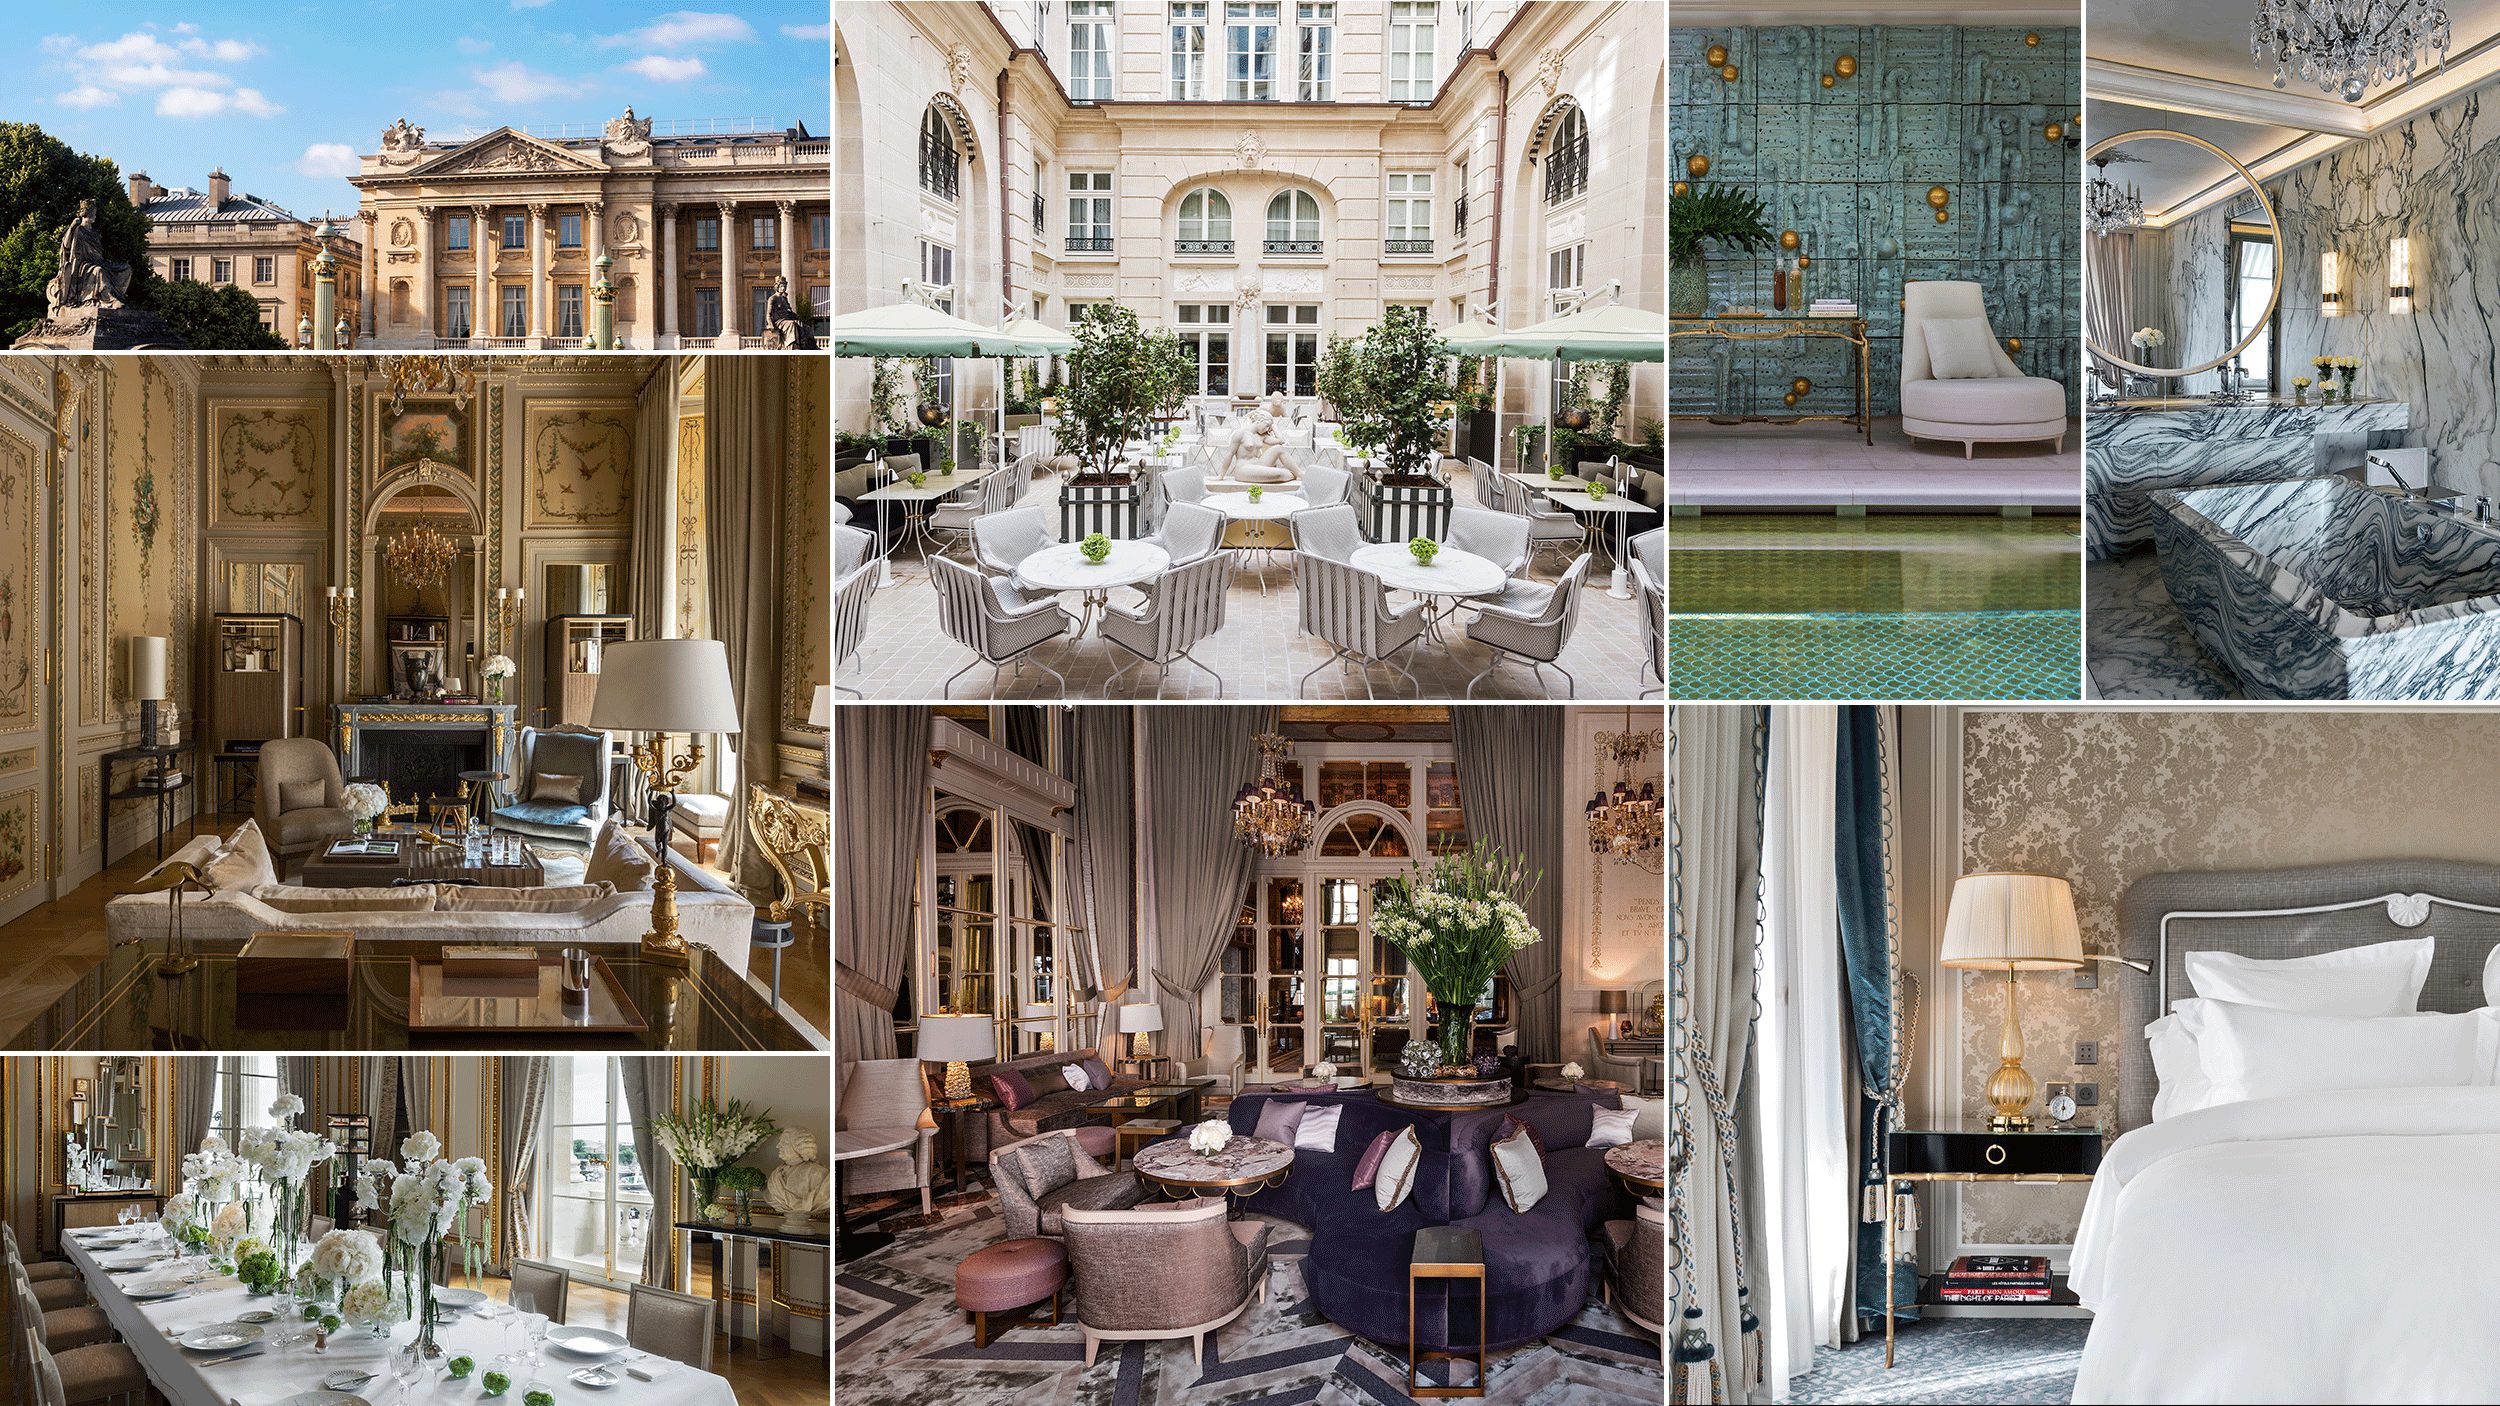 Everything You Need To Know About Parisu0027 Newly Re Opened Hotel De Crillon